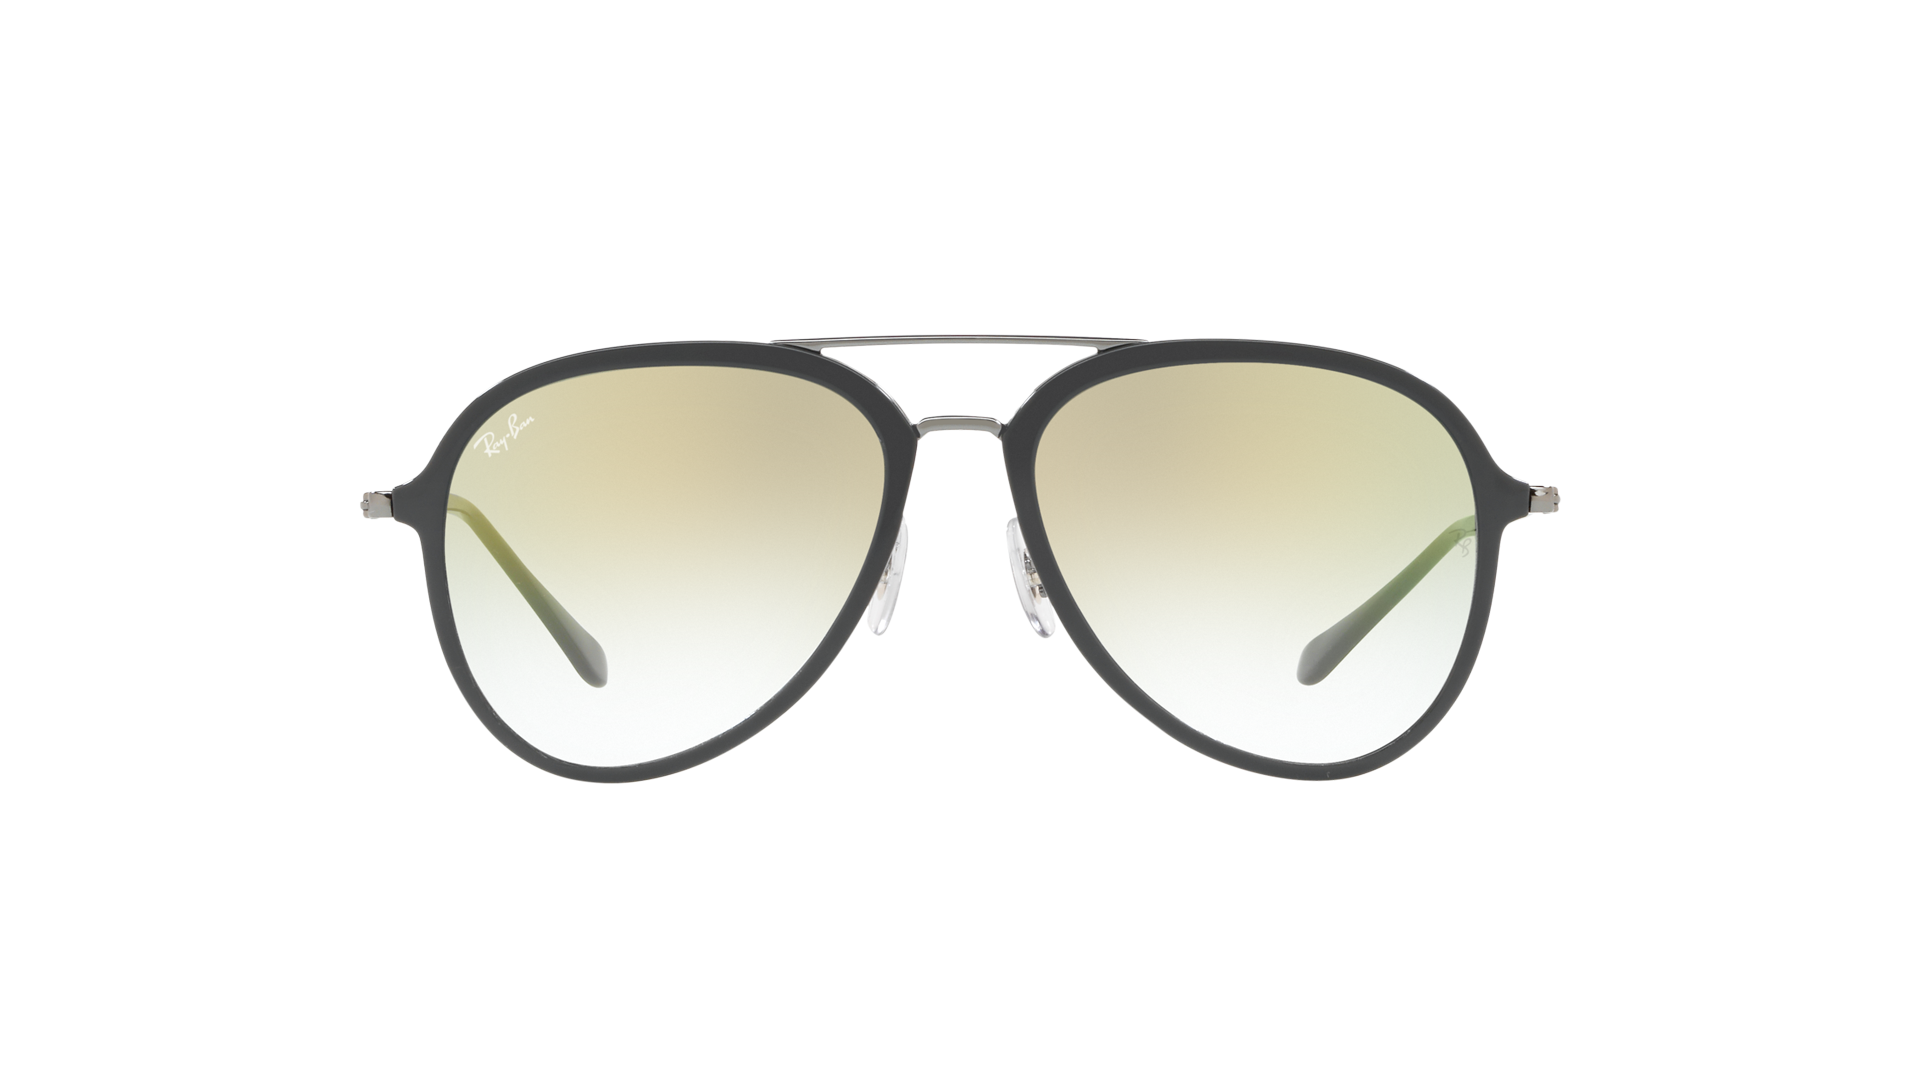 6328ac36d7dfe Sunglasses Ray-Ban RB4298 6333 Y0 57-17 Grey Large Gradient Mirror